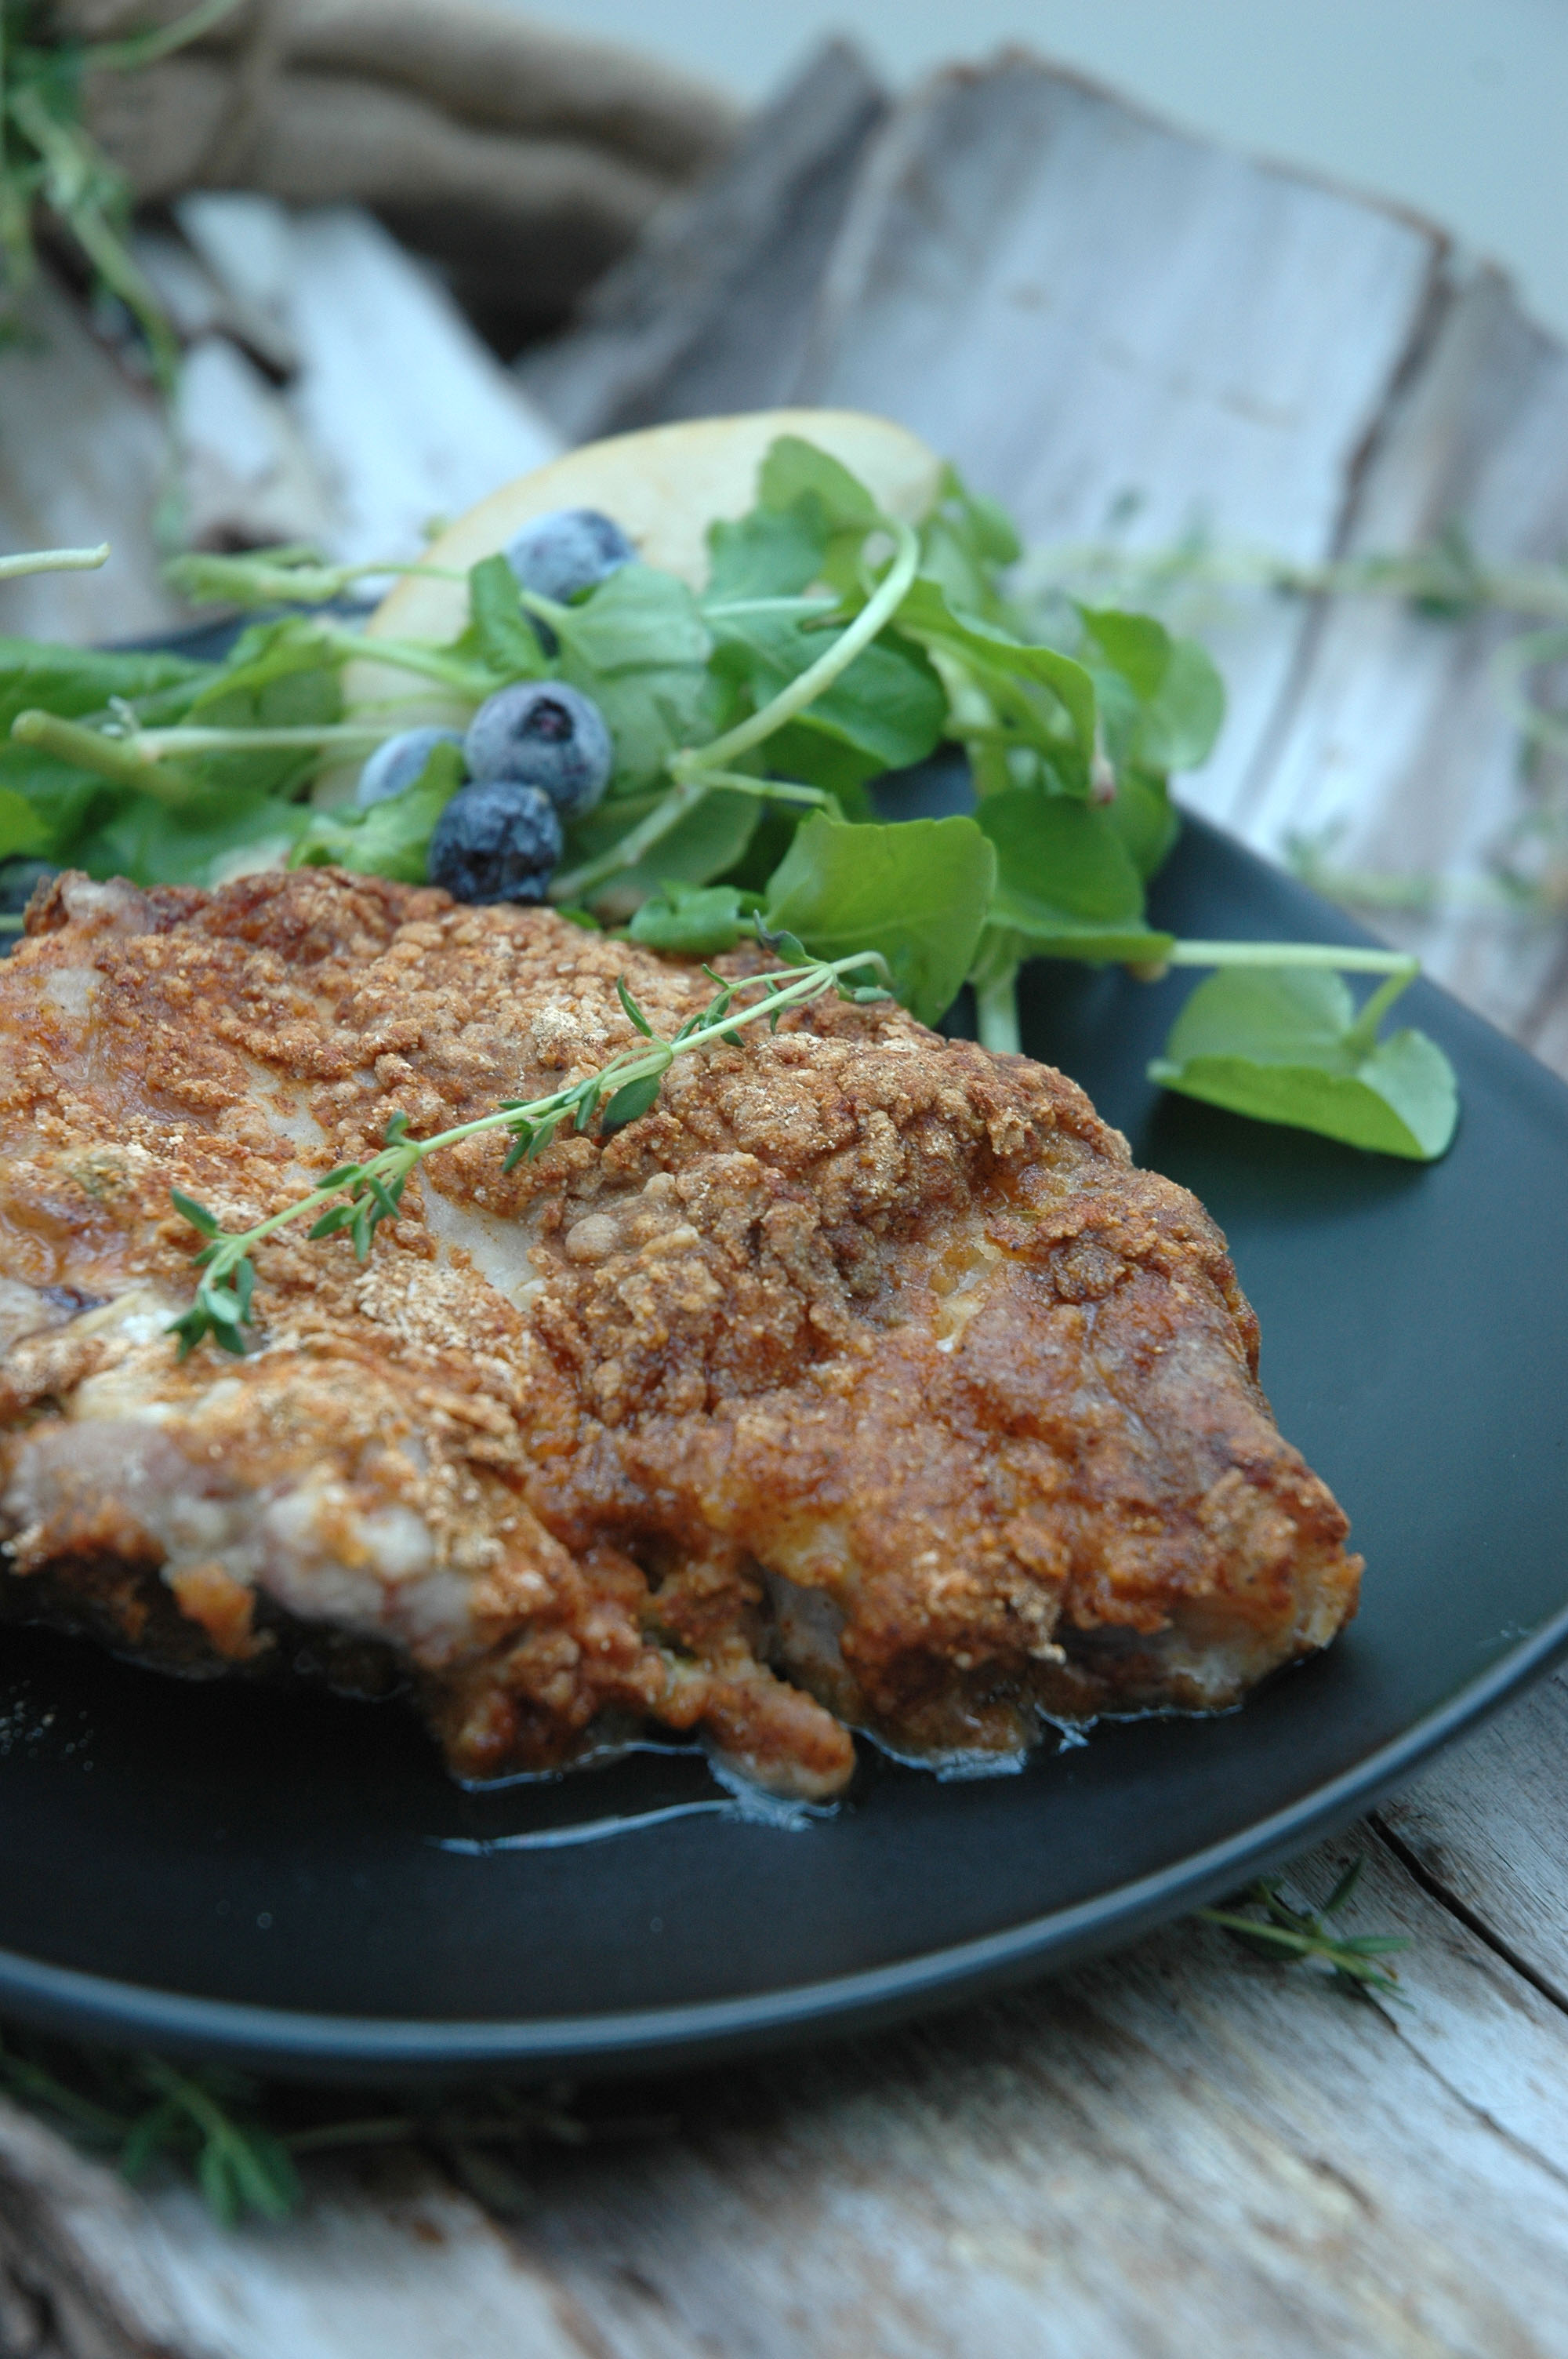 Recipes for crumbed pork chops